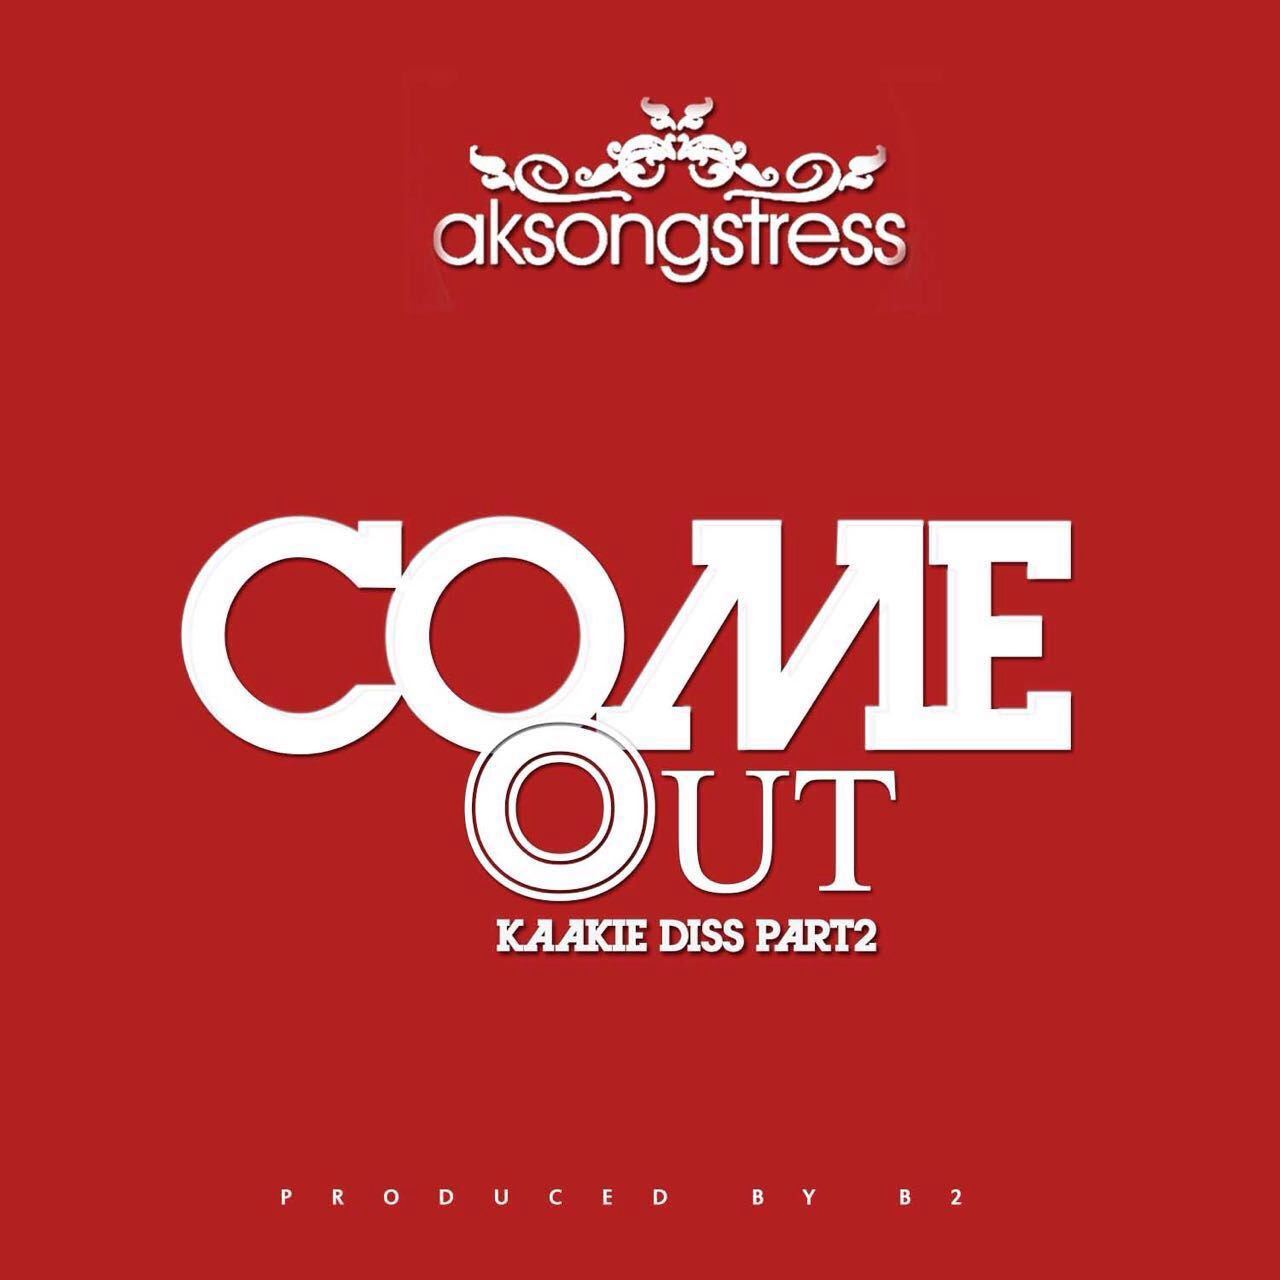 Ak Songstress Come Out - (Kaakie Diss Part 2)